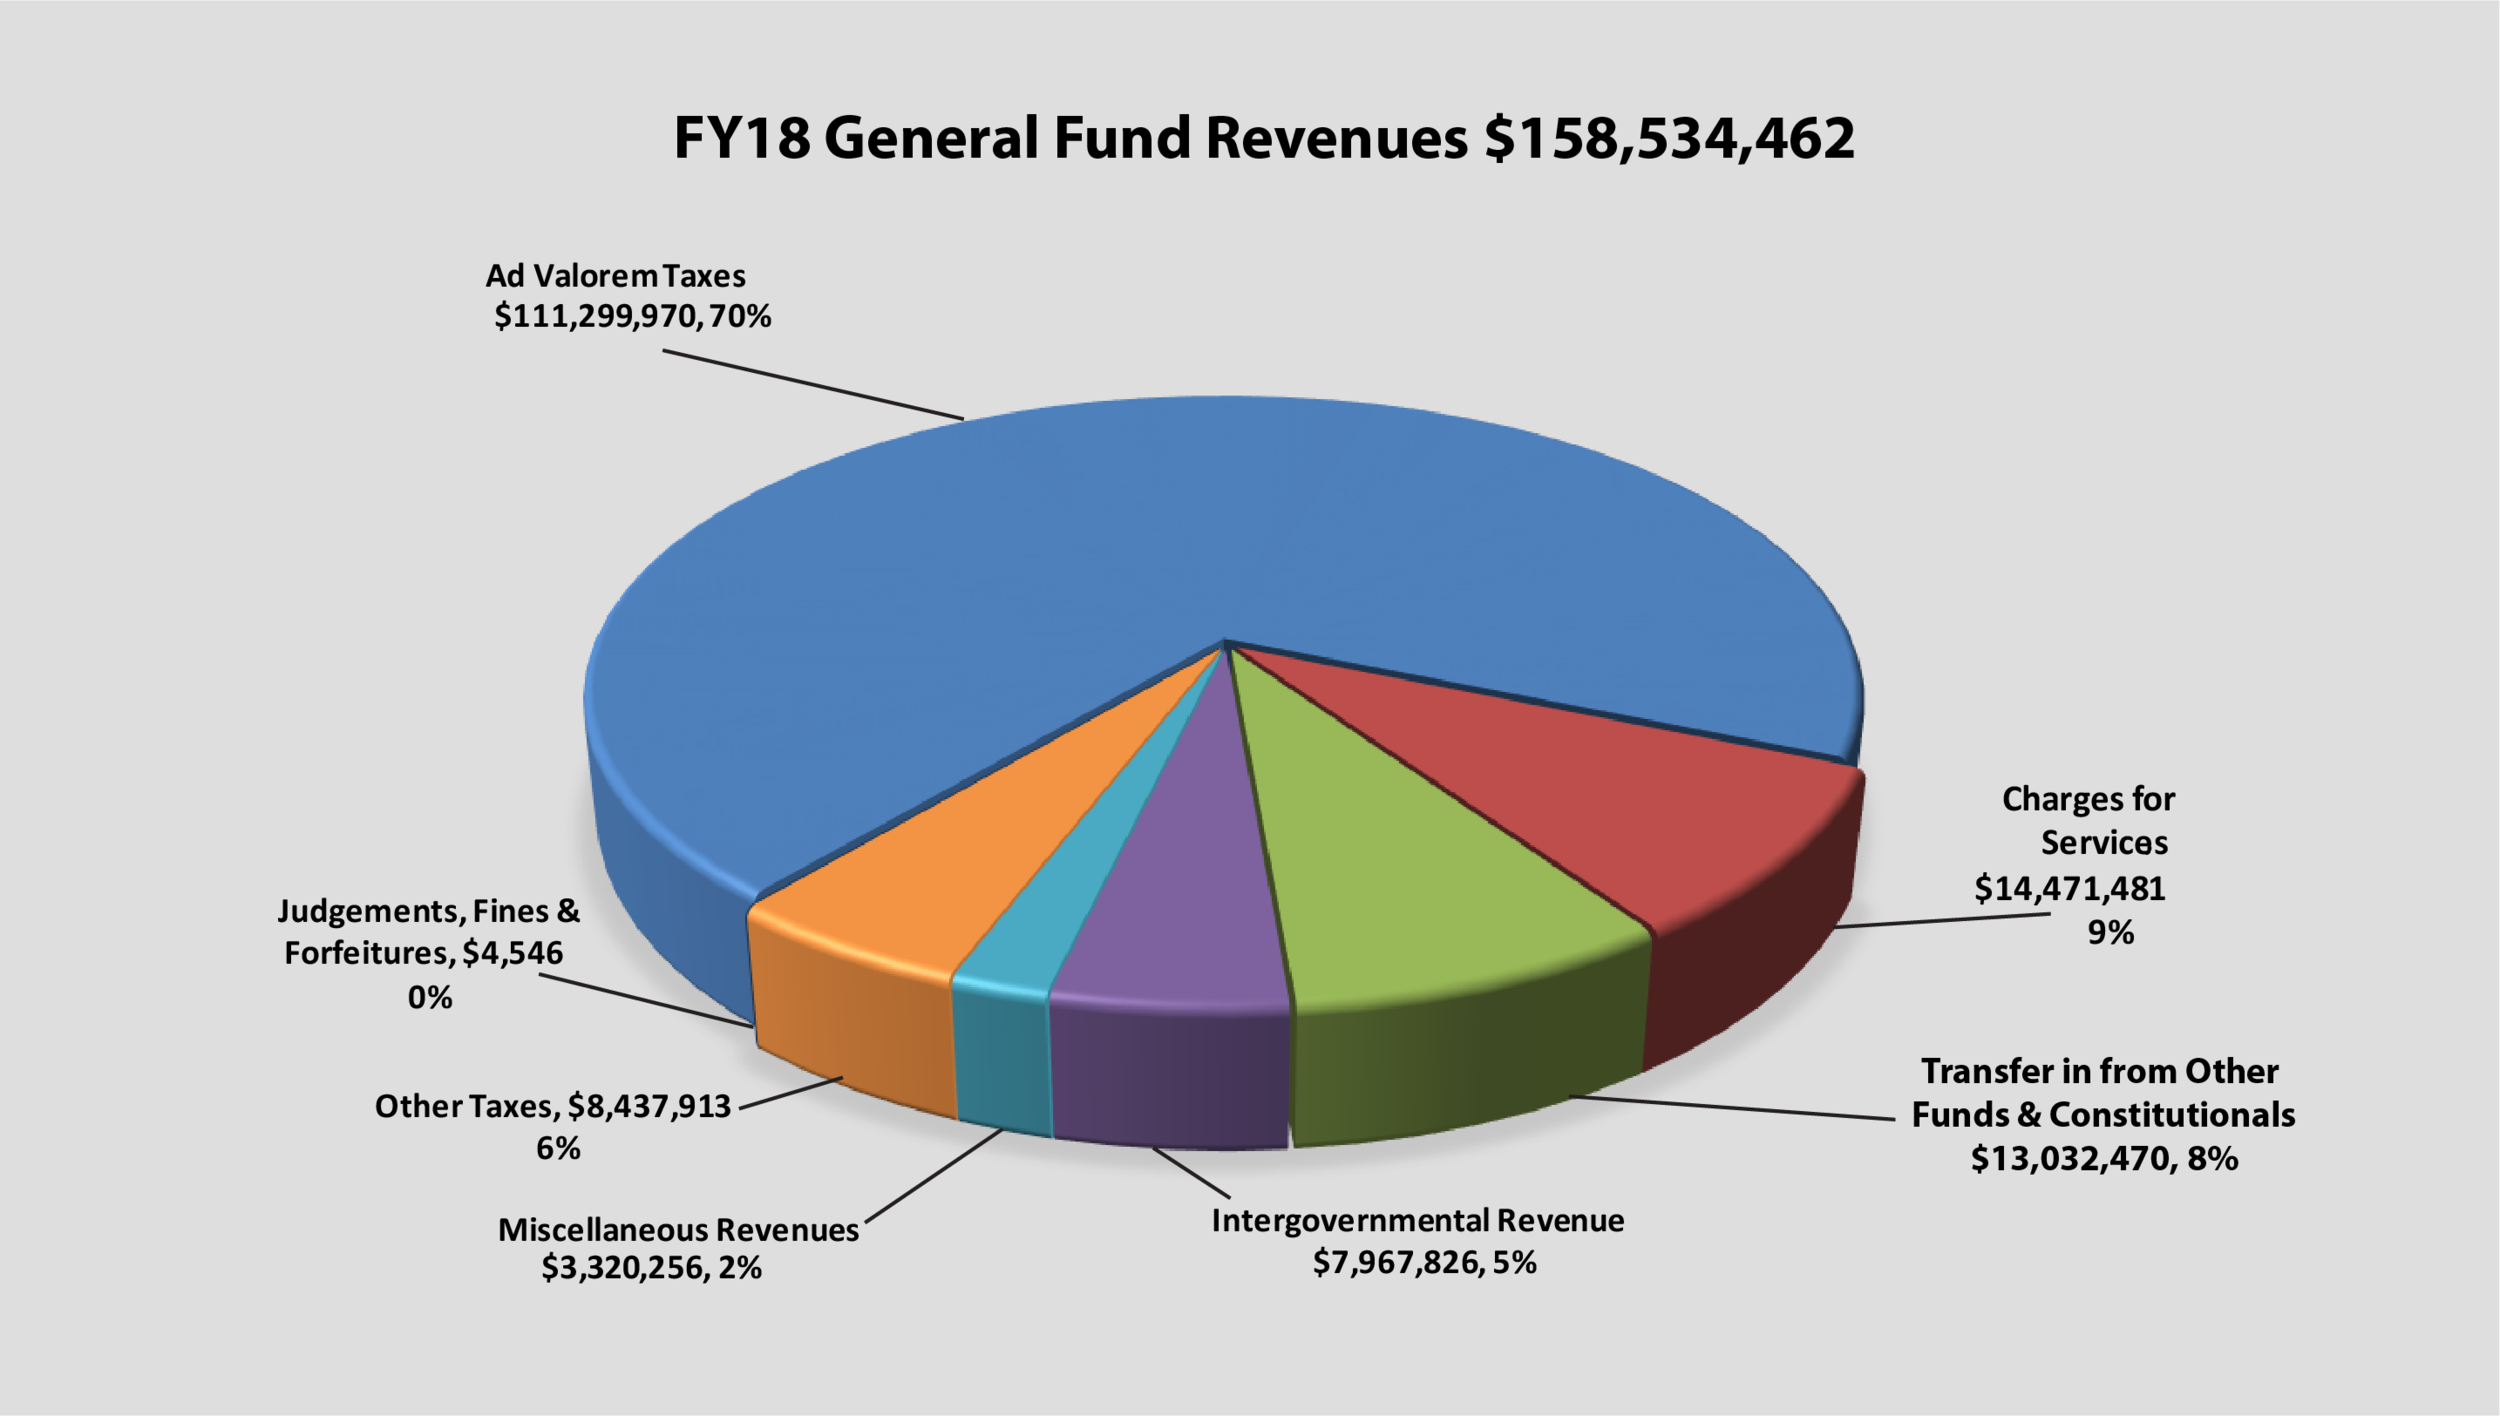 Piechart of FY18 General Fund Revenues $158,534,462, Ad Valorem Taxes $111,299,970, Charges for Services $14,471,481, Transfer in from Other Funds & Constitutionals $13,032,470, Other Taxes $8,437,913, Intergovernmental Revenue $7,967,826, Miscellaneous Revenues $3,320,256, Judgements, Fines & Forfeitures $4,546